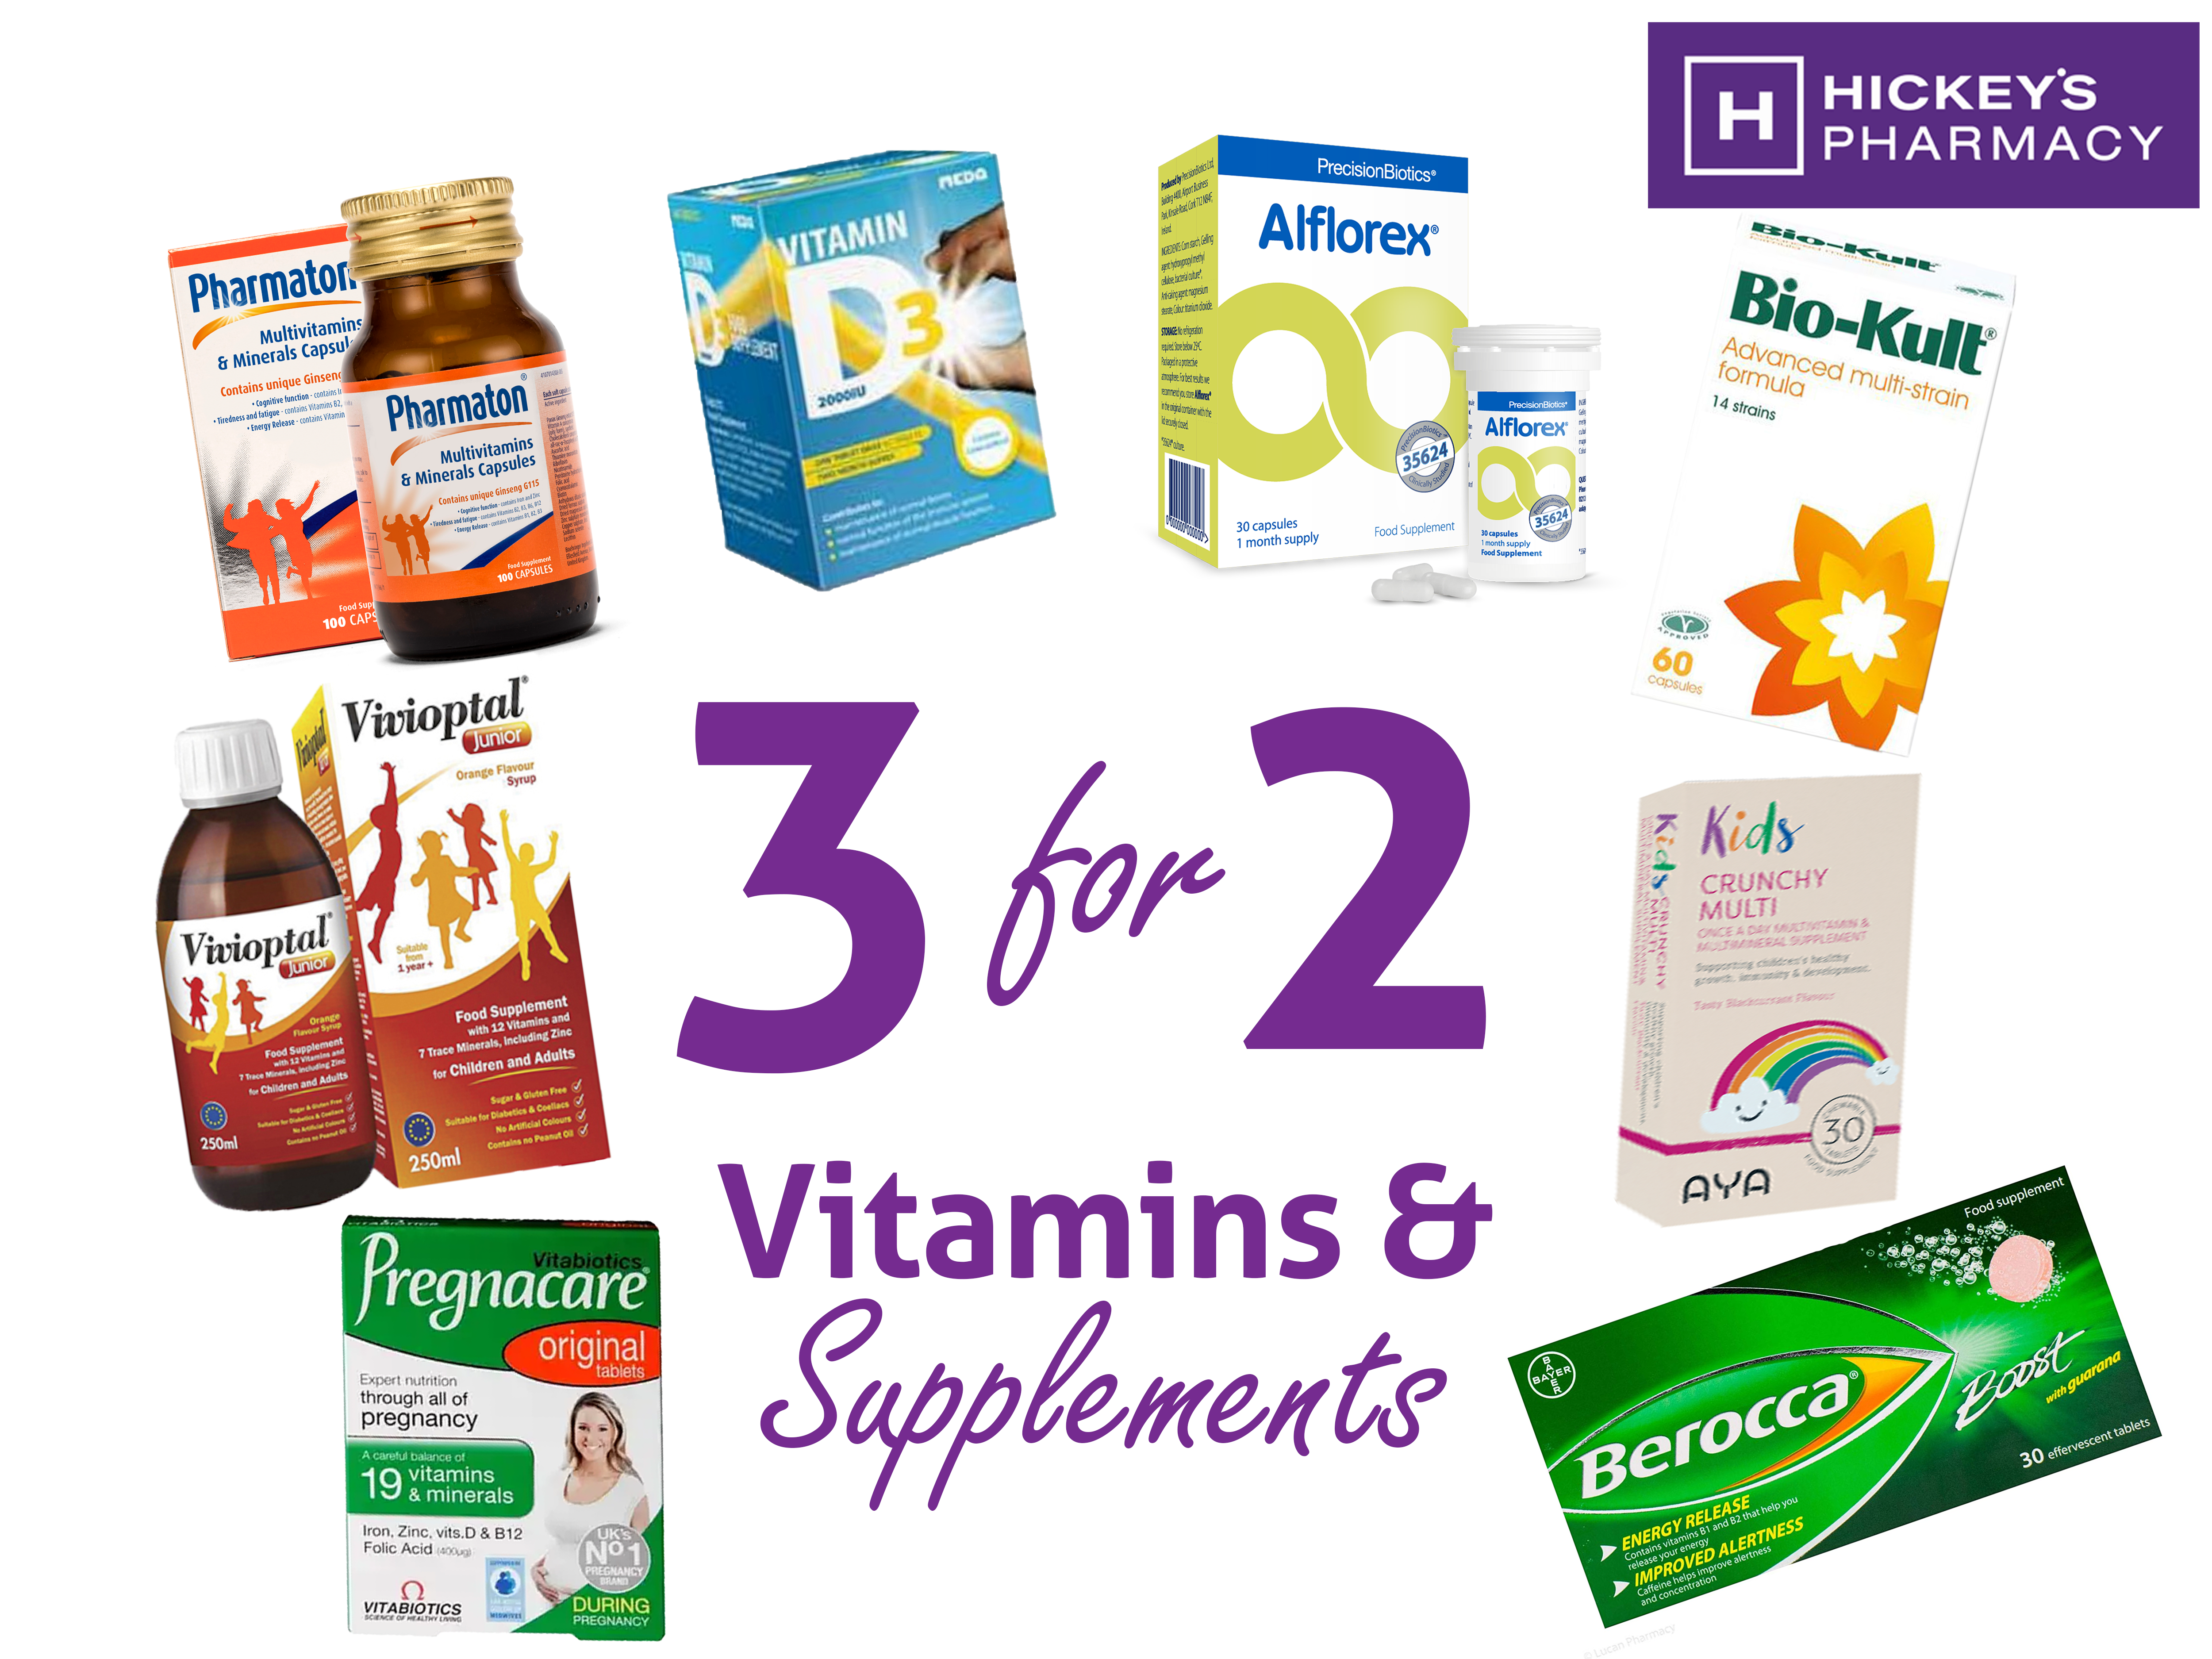 Vitamins & Supplements are now 3 for 2* at Hickey's Pharmacy